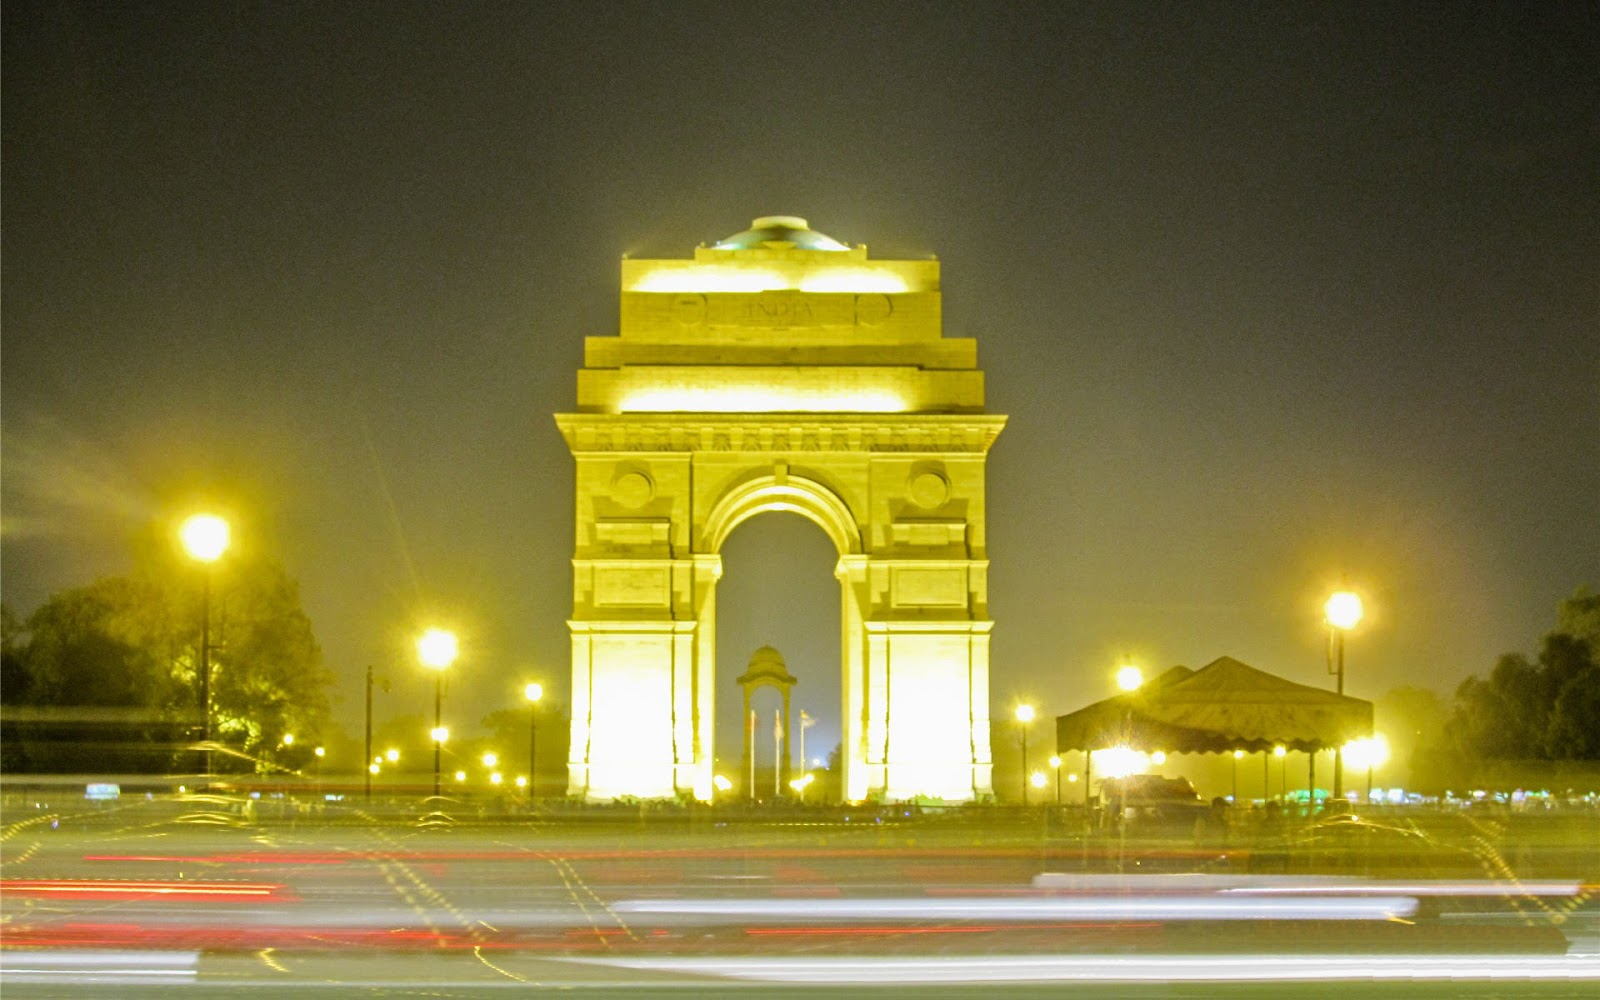 Free Download Wallpaper Hd India Gate Delhi High Resolution Full Hd Wallpapers Free 1080p